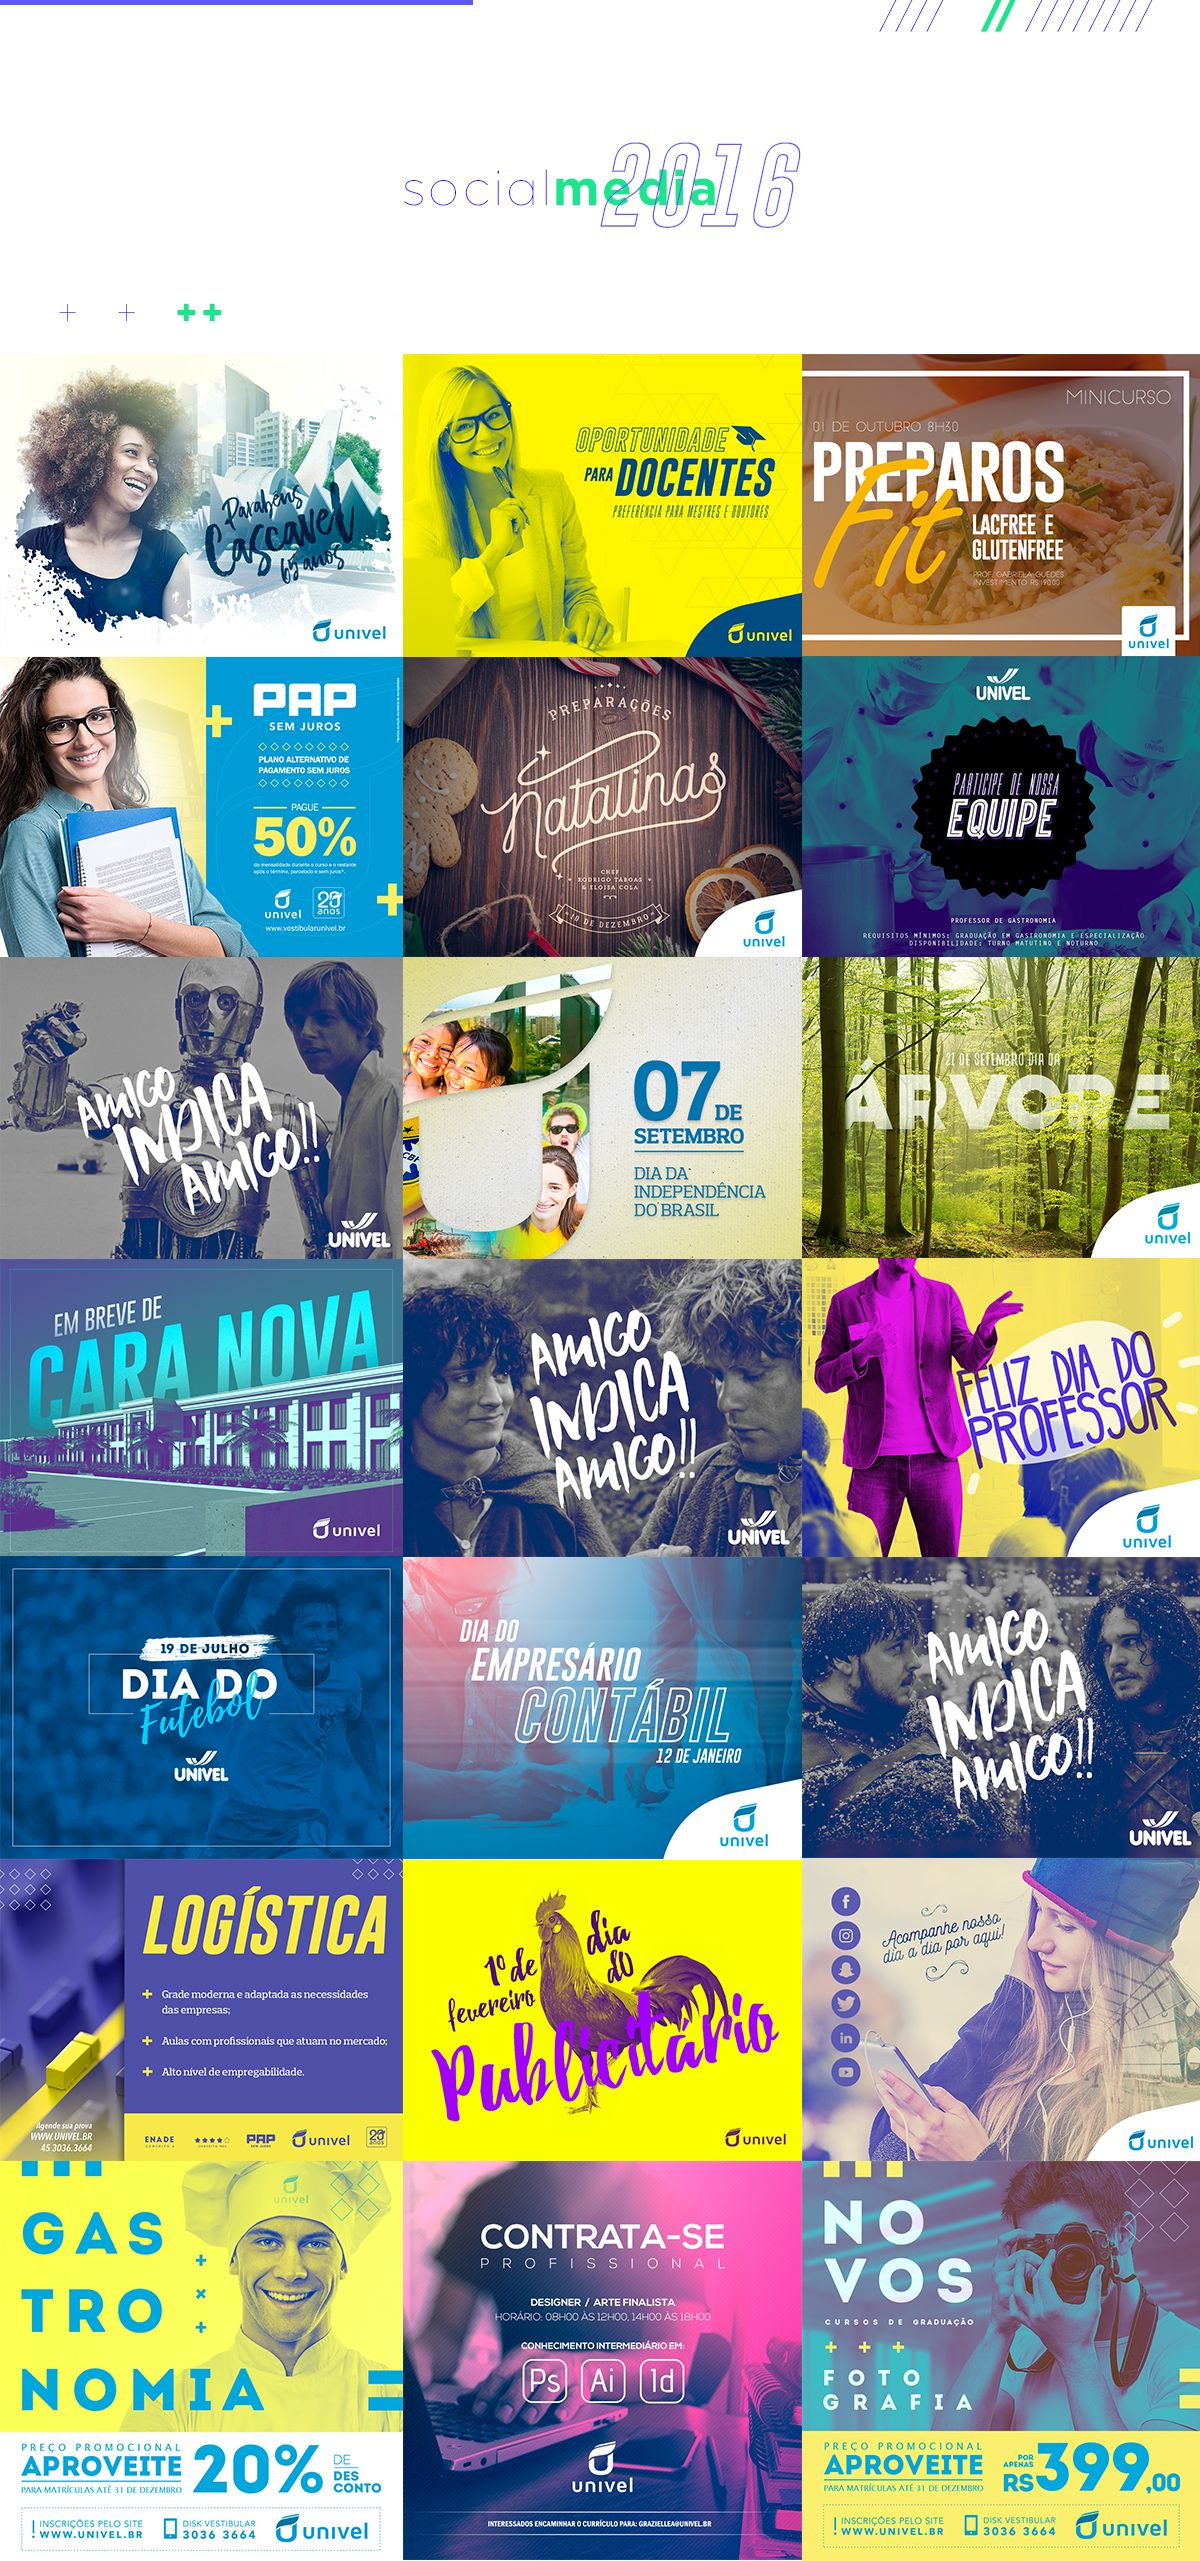 Social Media 2016 - Univel on Behance